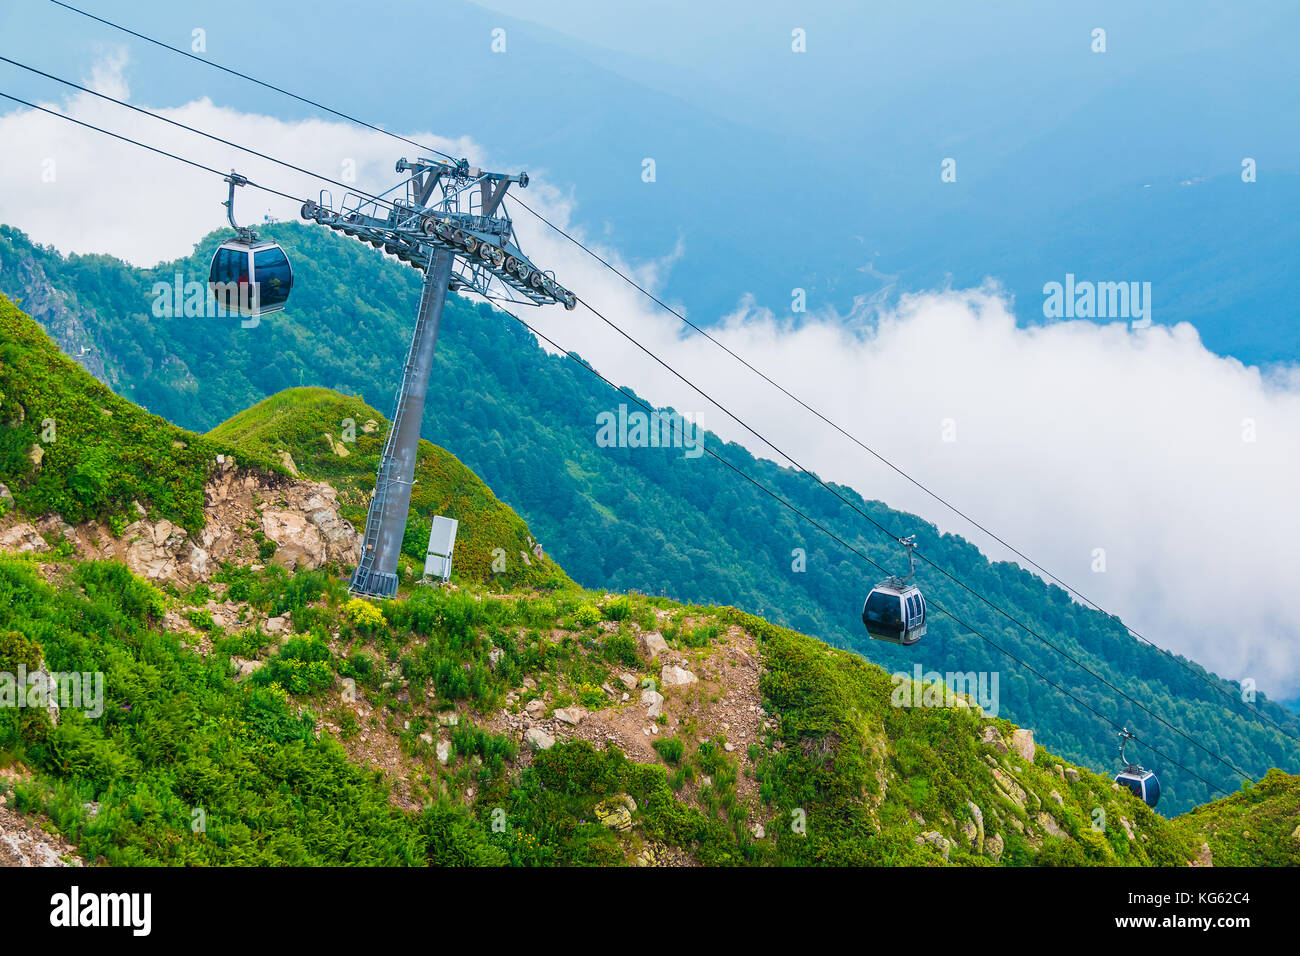 Cableway on the background of ridges and mountainsides in Rosa Khutor, Russia - Stock Image